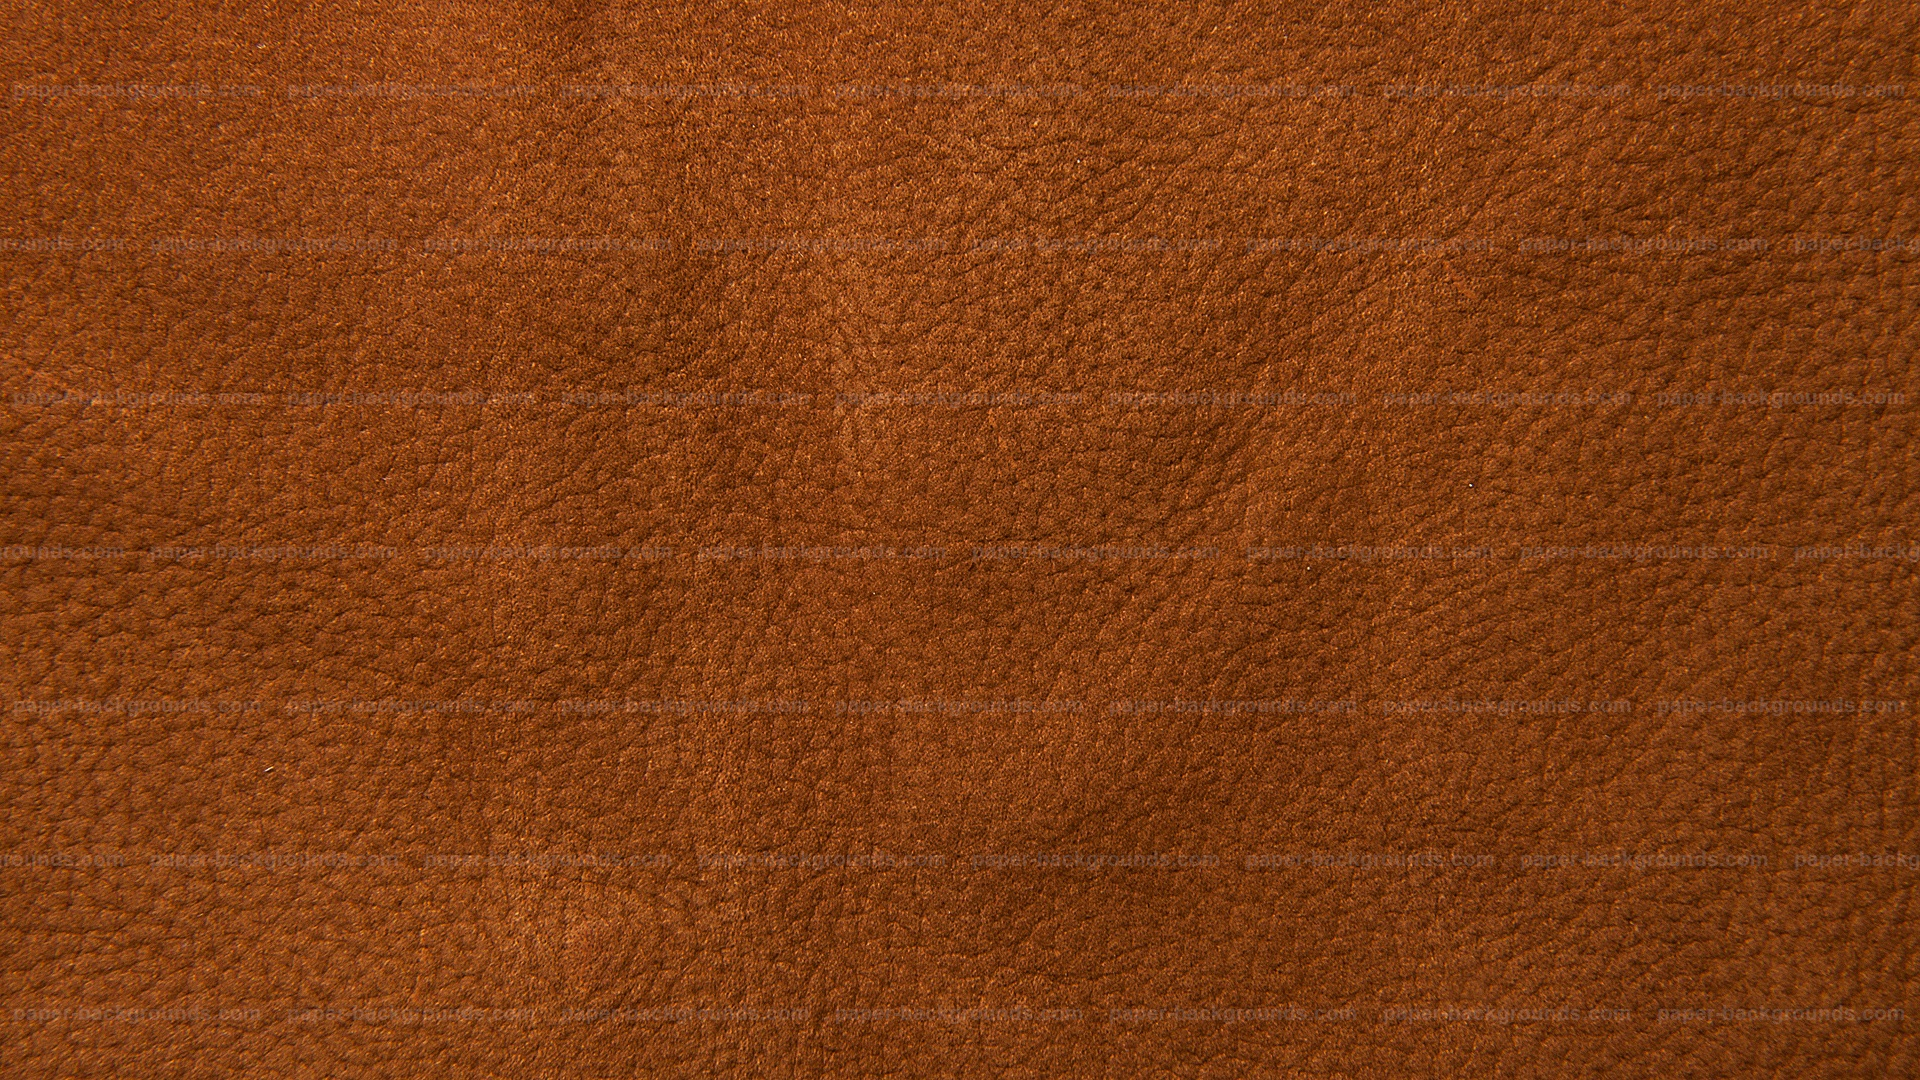 Leather Textures clipart tileable Background Uncategorized Leather Free HD